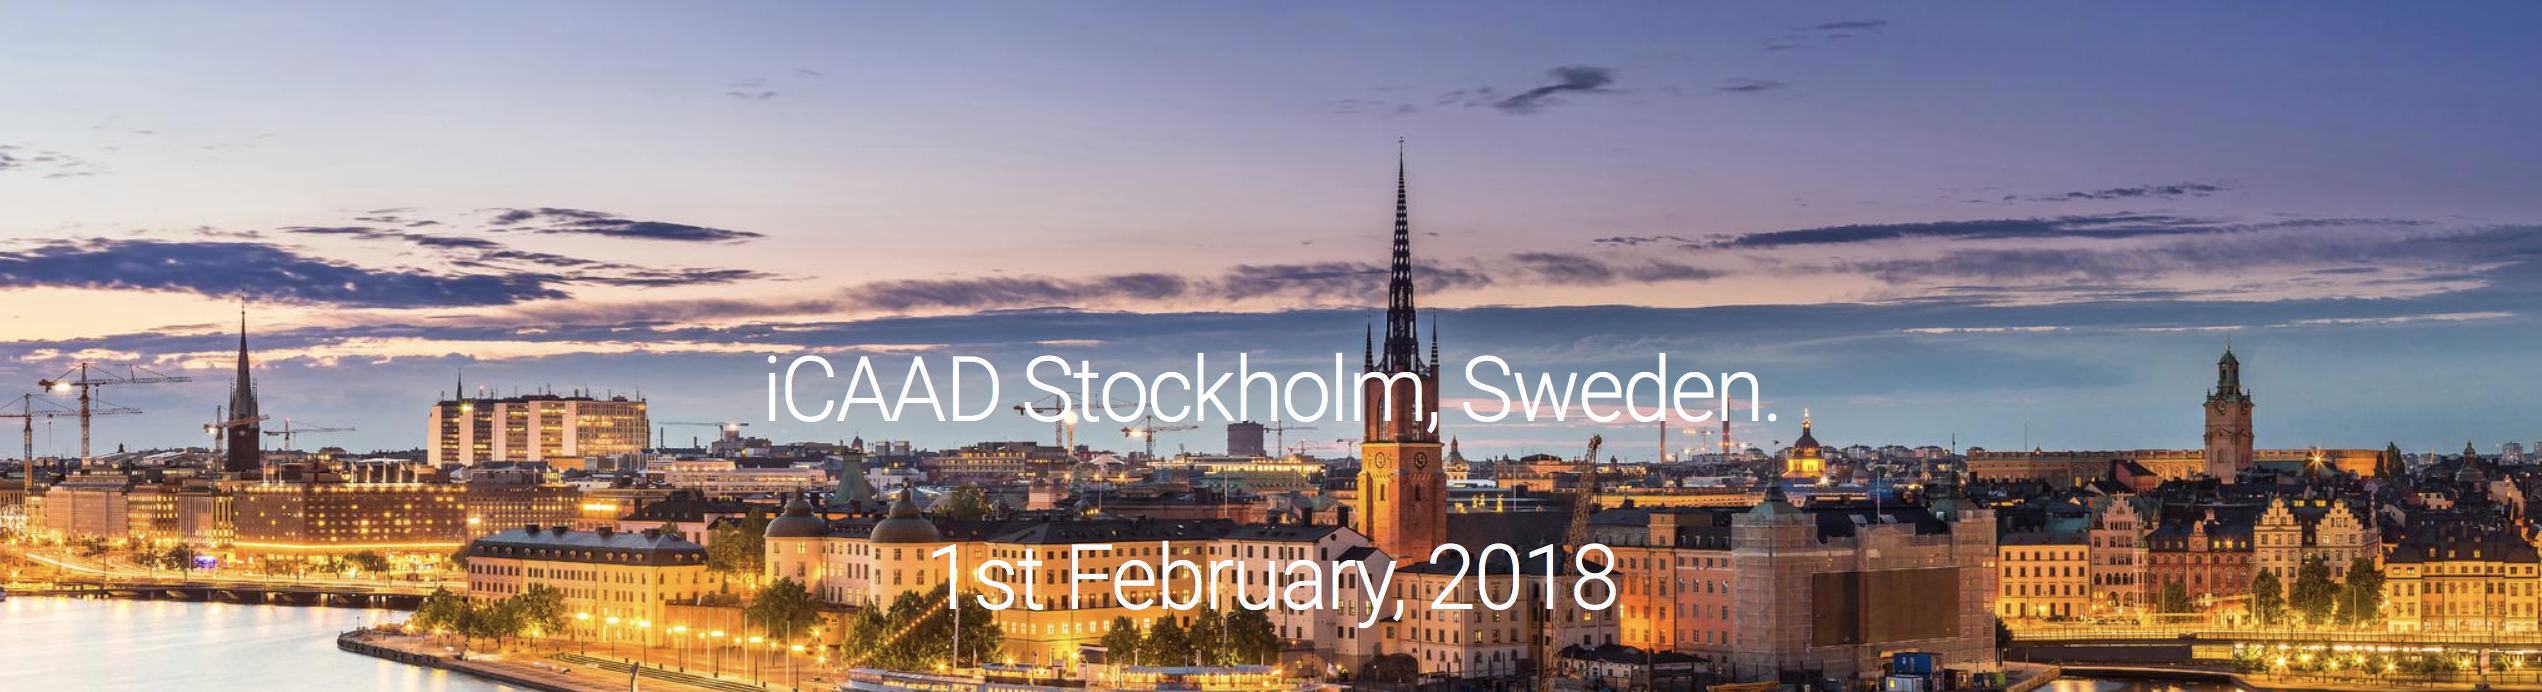 ICAAD Sweden February 1st 2018